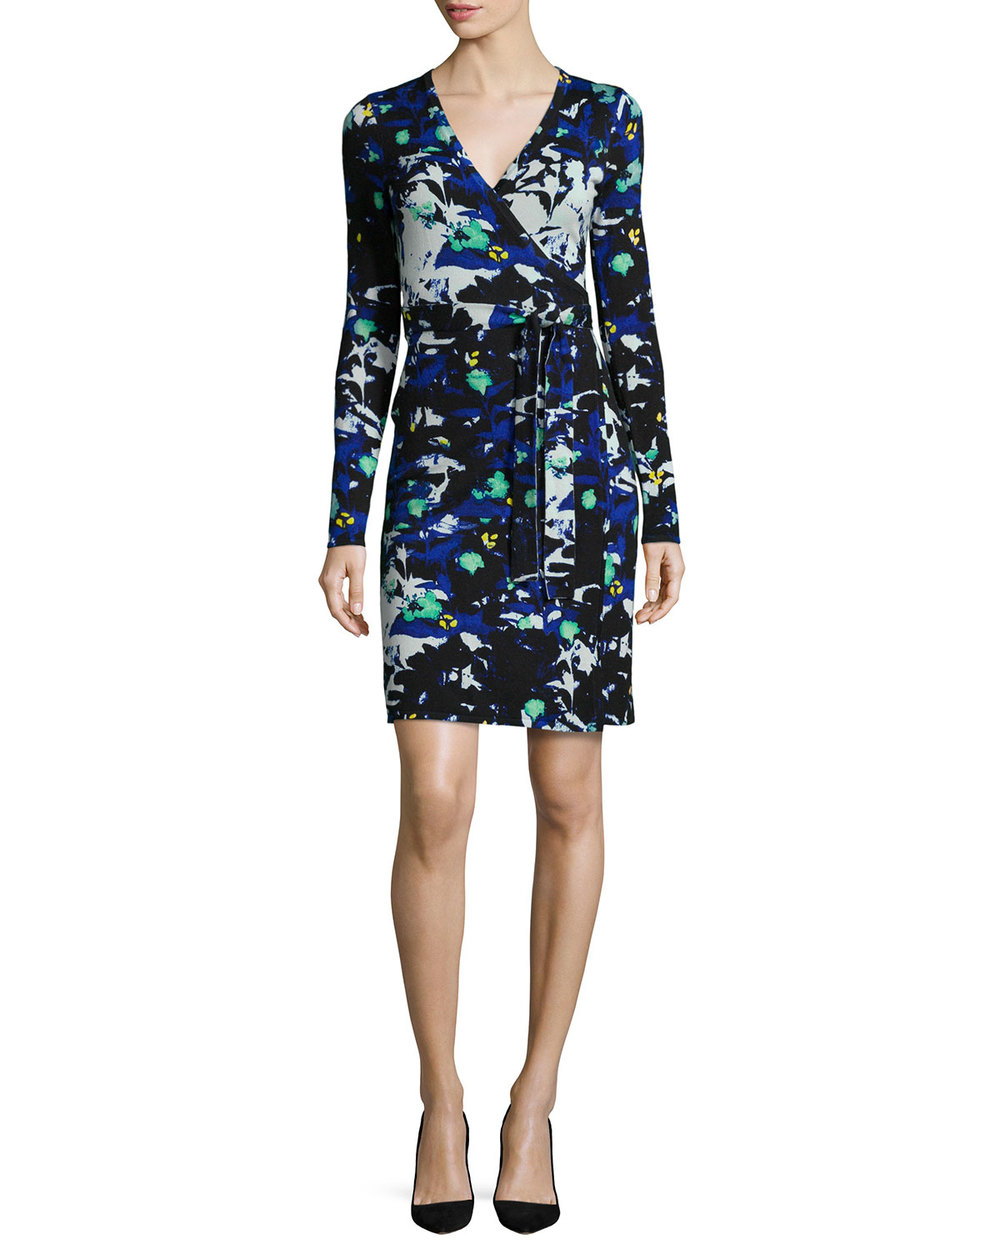 Diane von Furstenberg Leandra Leaf-Print Wrap Dress $468